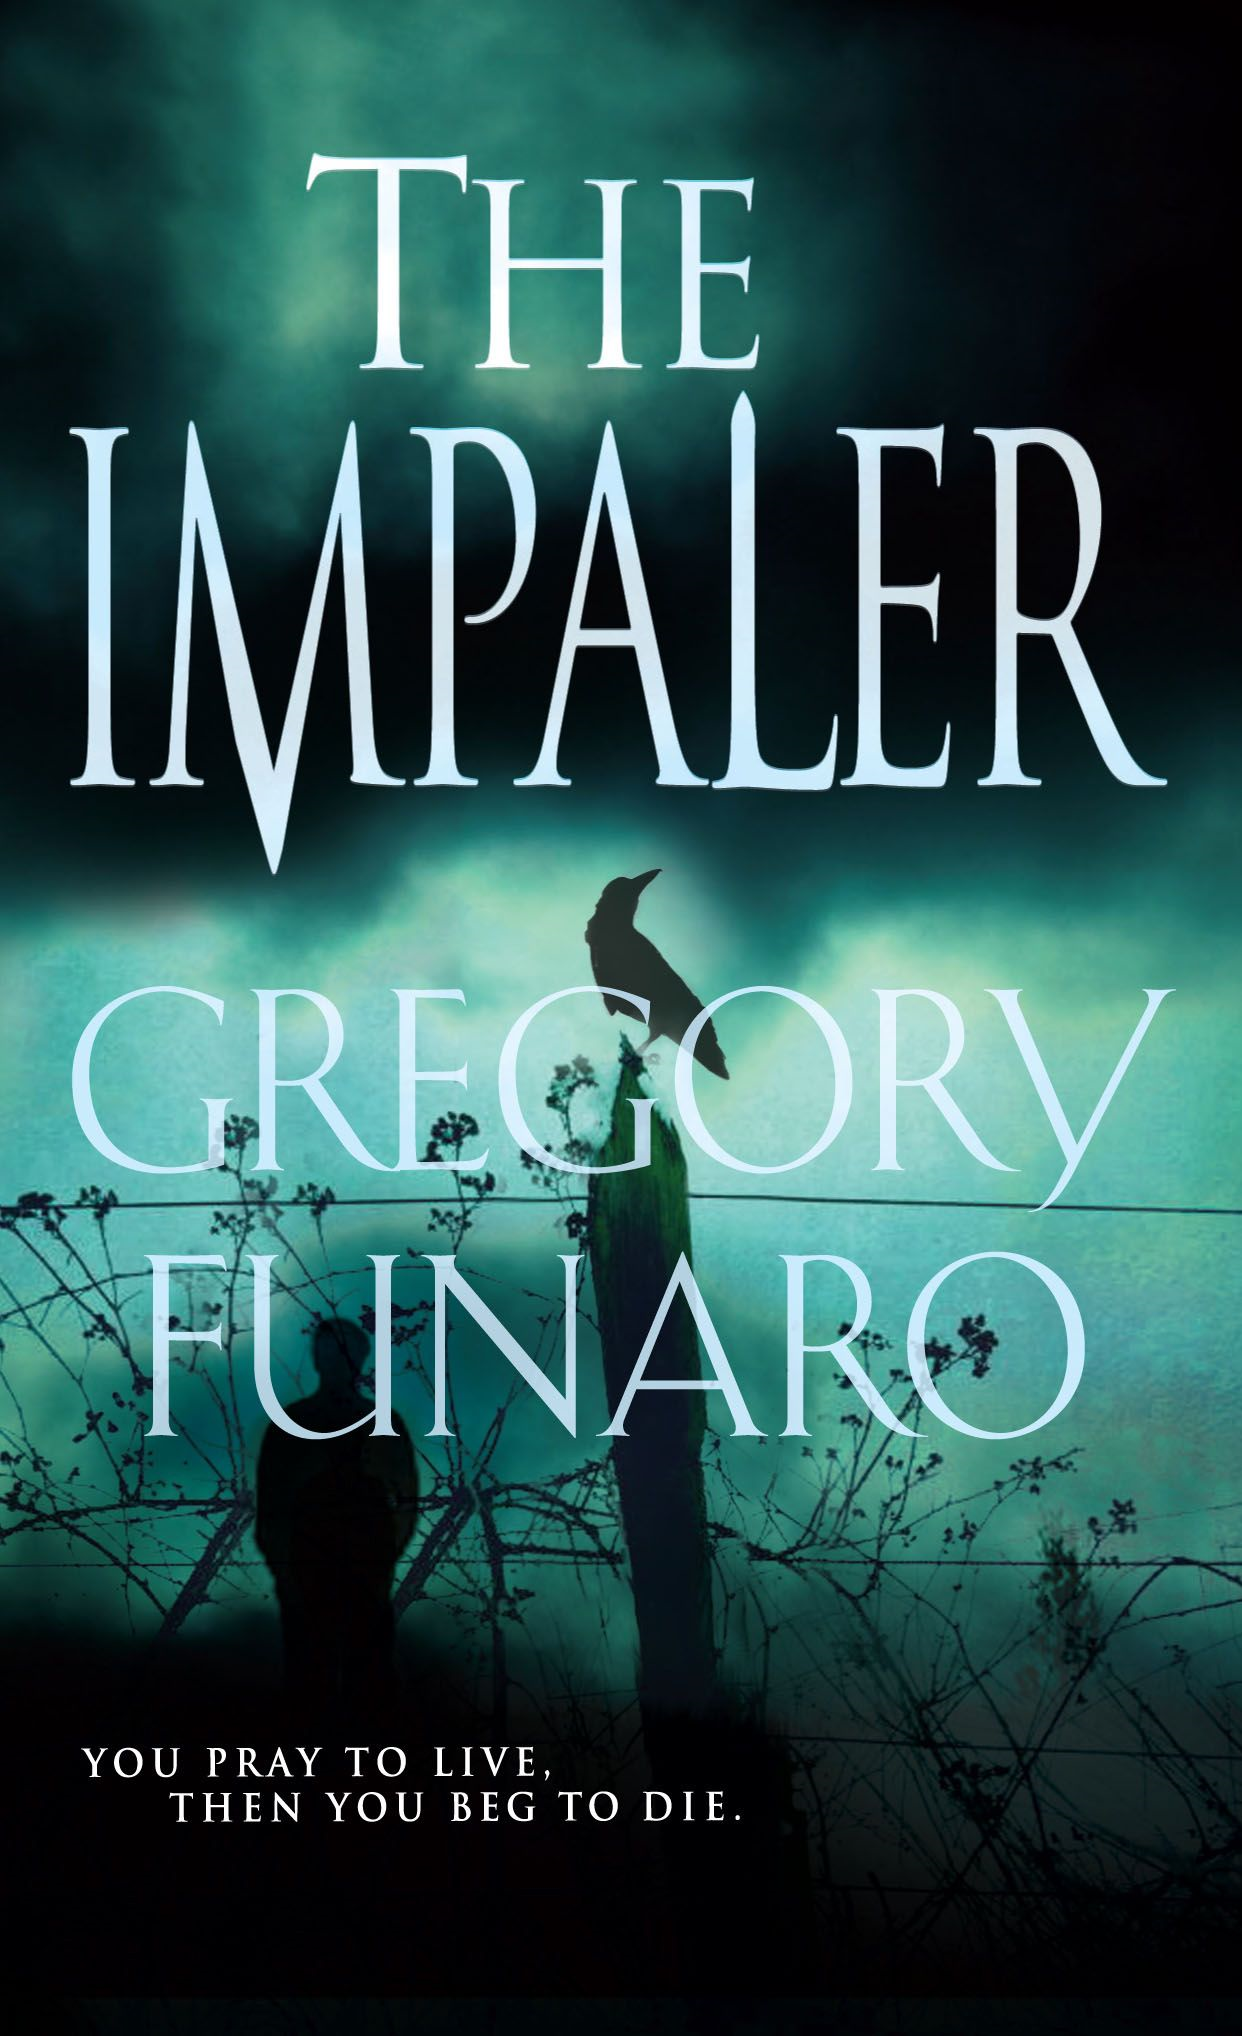 The Impaler By: Gregory Funaro